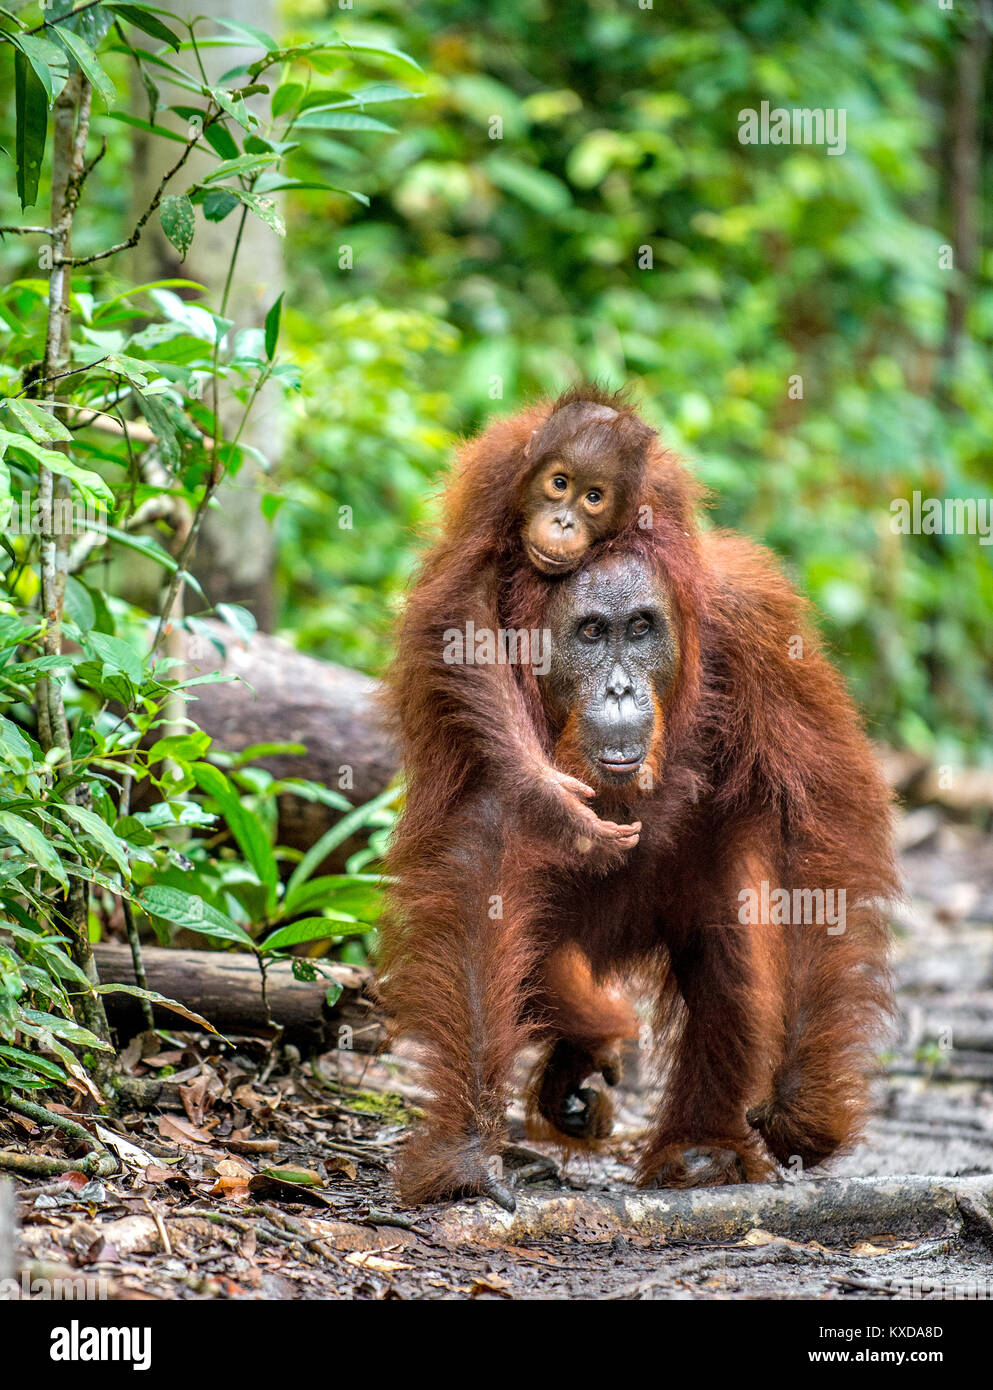 A female of the orangutan with a cub in a natural habitat.  Central Bornean orangutan (Pongo pygmaeus wurmbii) in - Stock Image